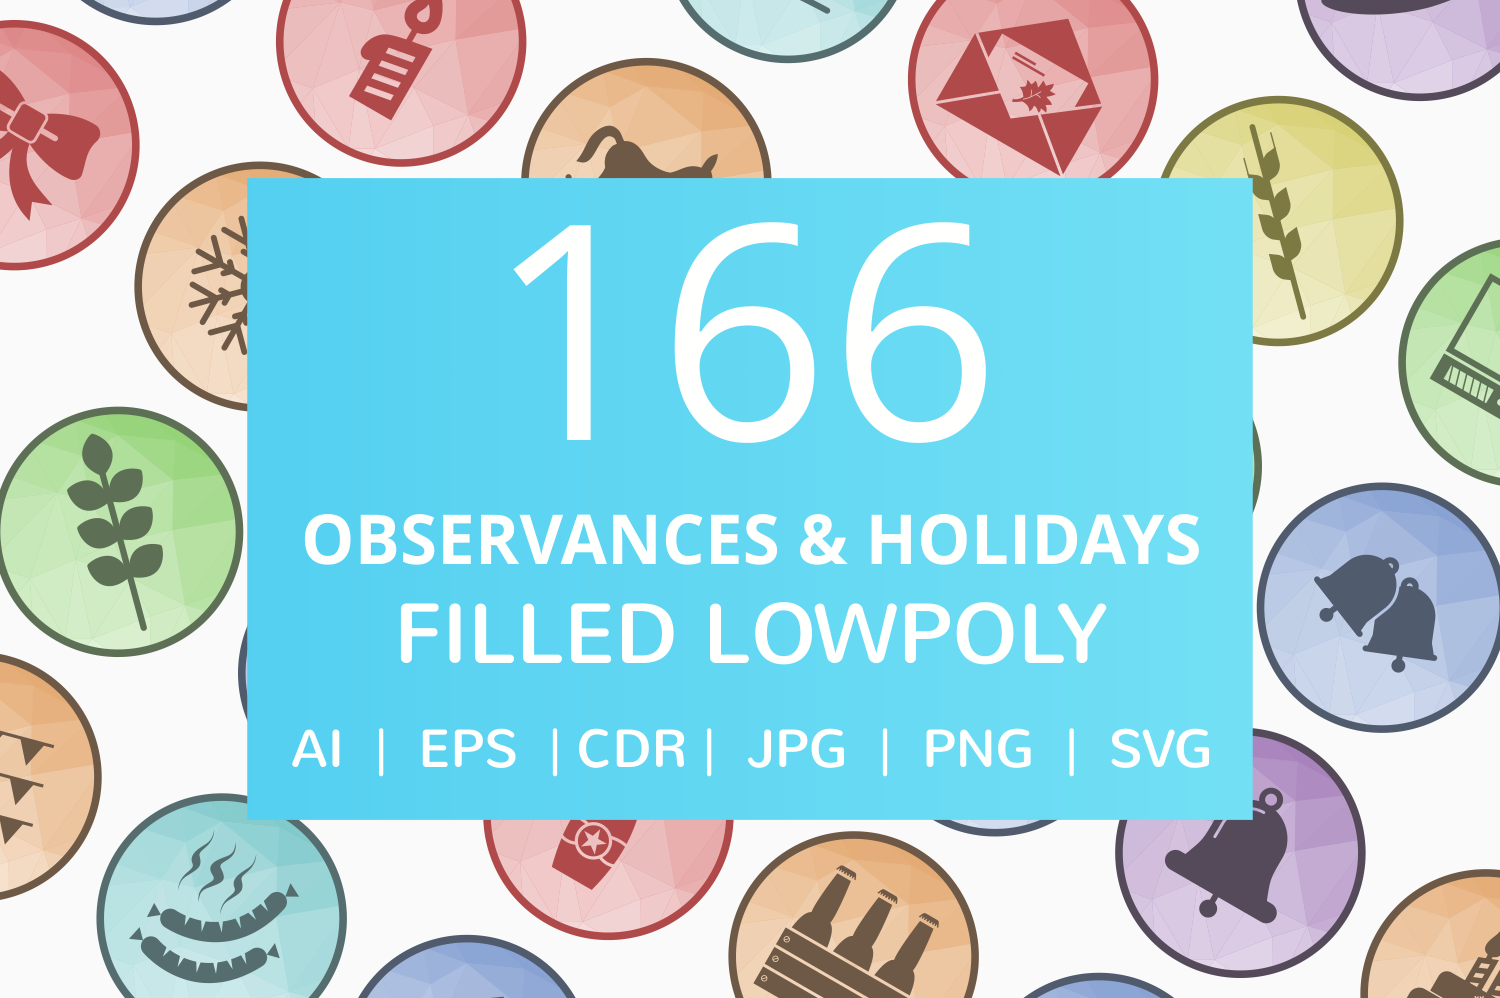 166 Observances & Holiday Filled Low Poly Icons example image 1